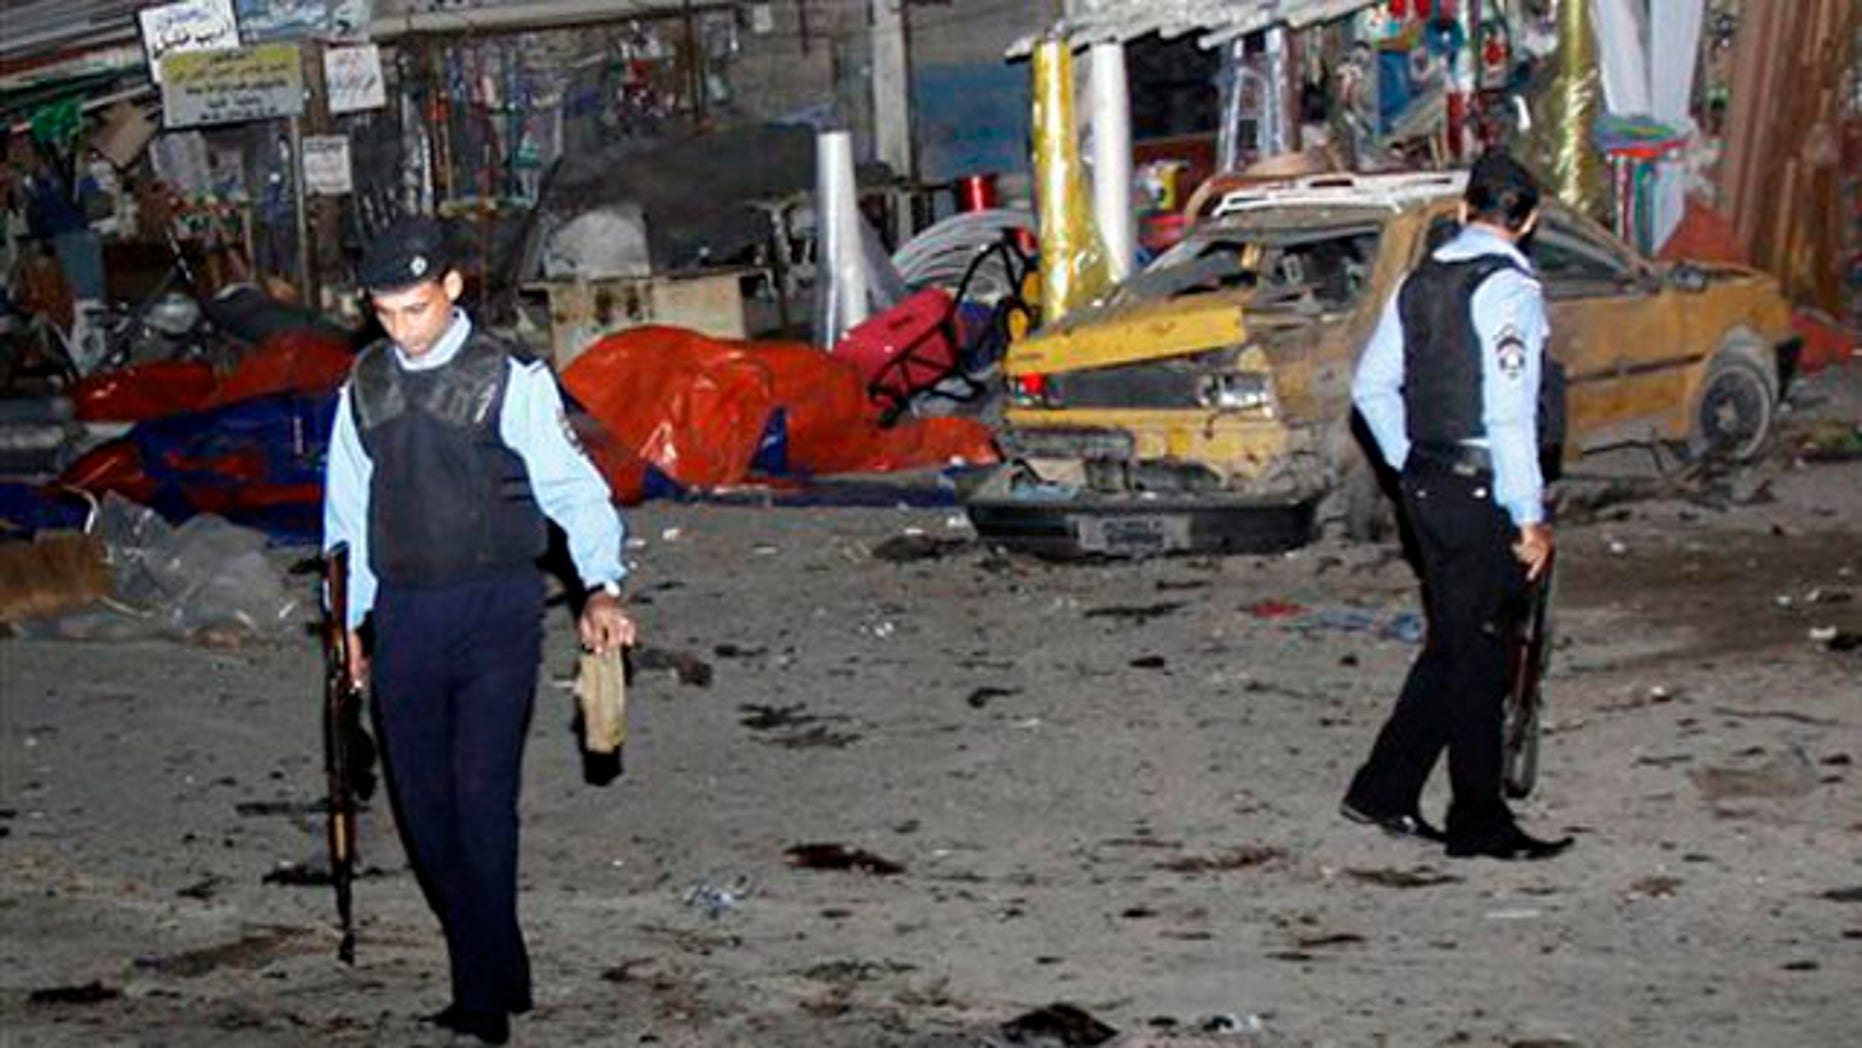 Police inspect the scene of a bomb attack in Basra, 340 miles southeast of Baghdad, Iraq, Thursday, Nov. 24, 2011.